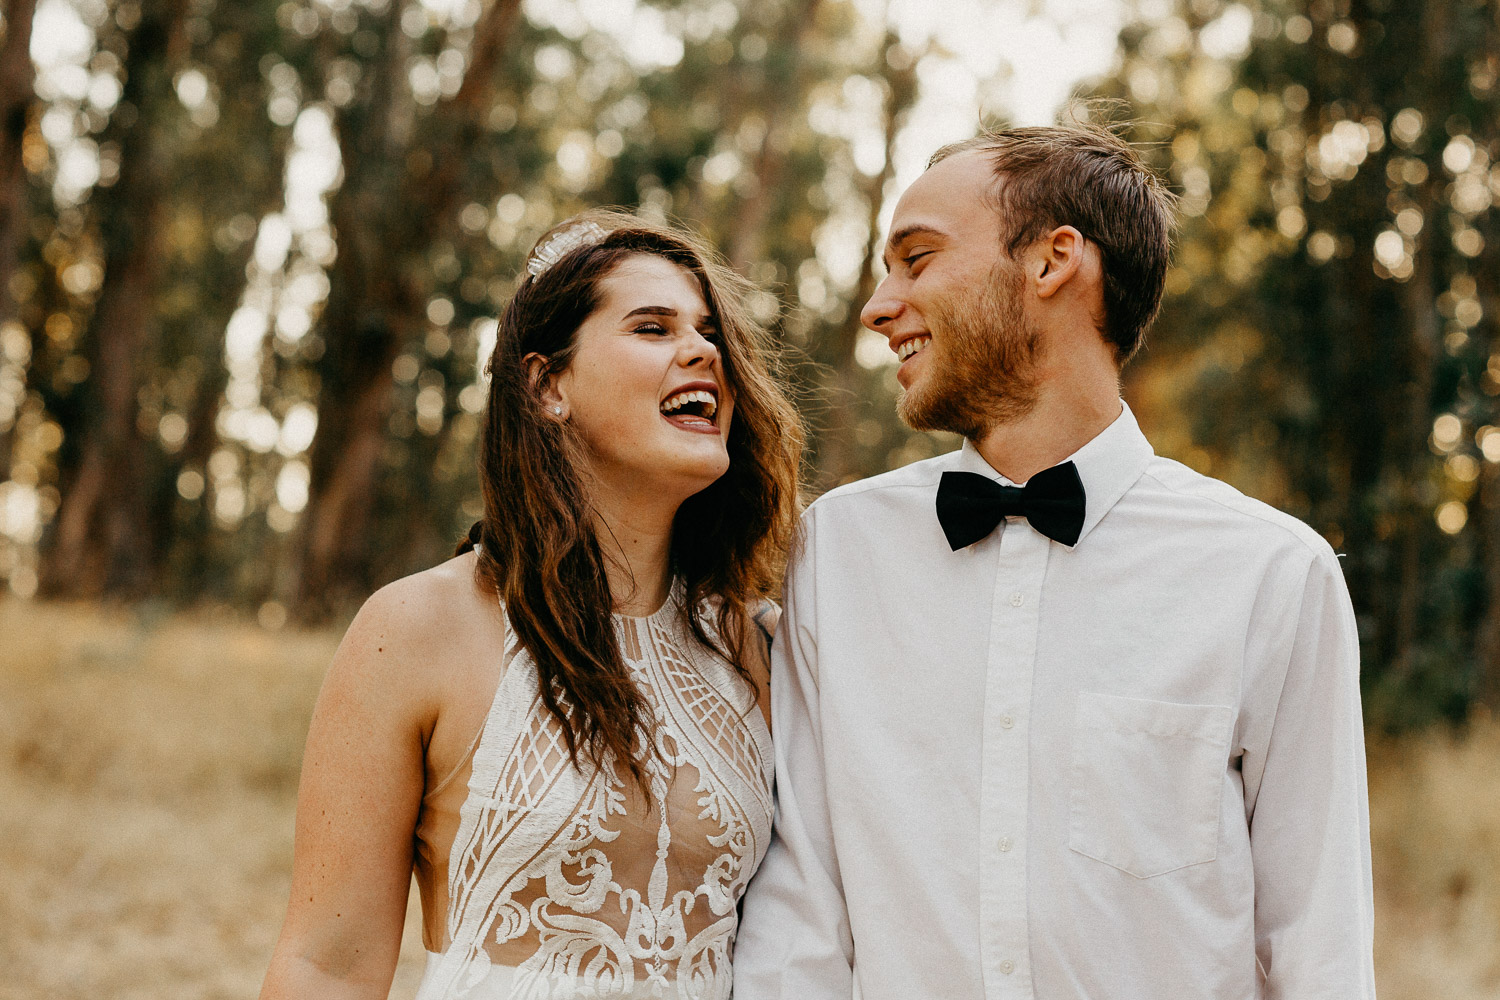 Image of bride and groom laugh together